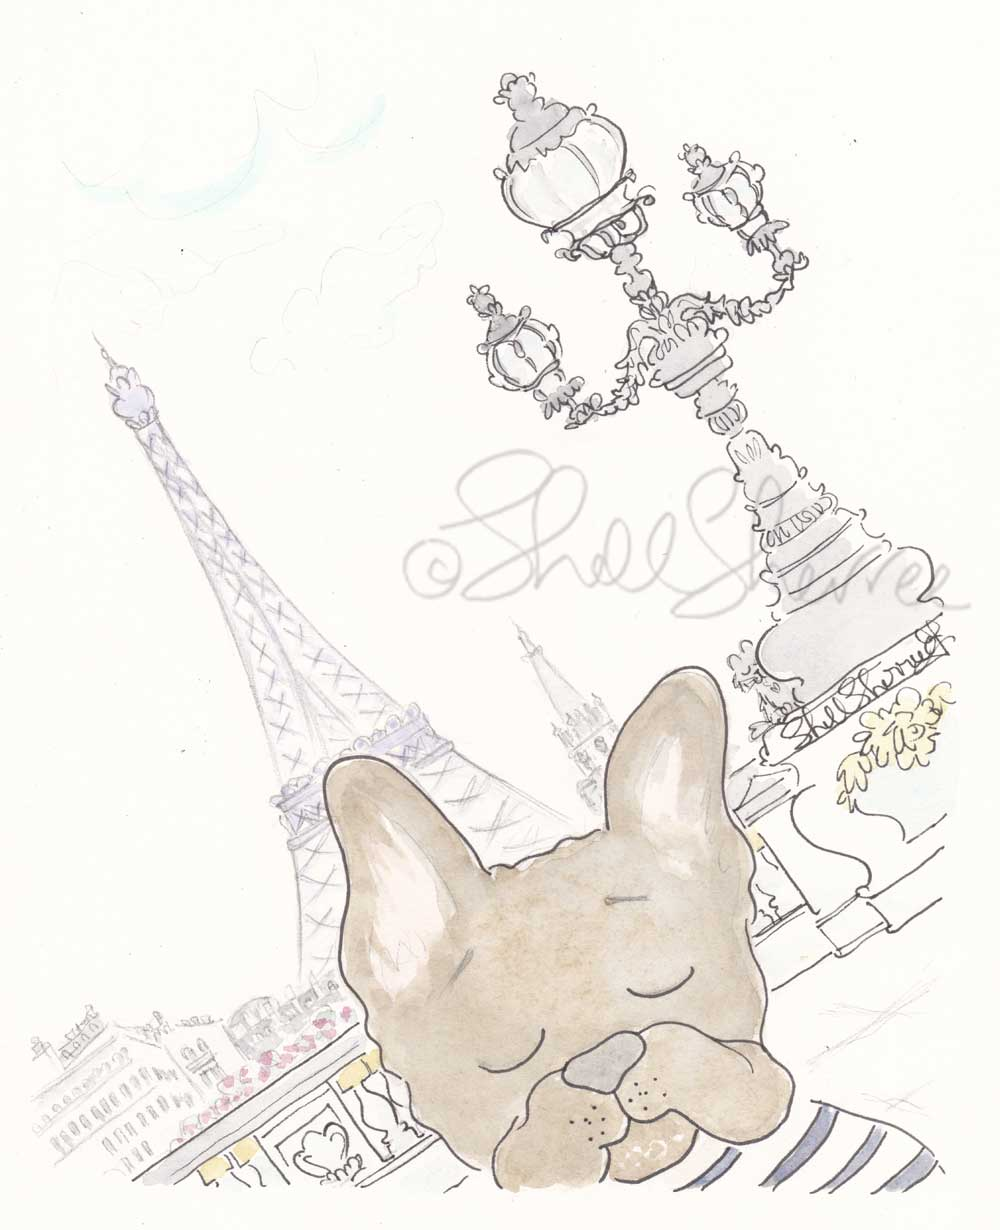 french bulldog in Paris photobomb illustration by shell sherree